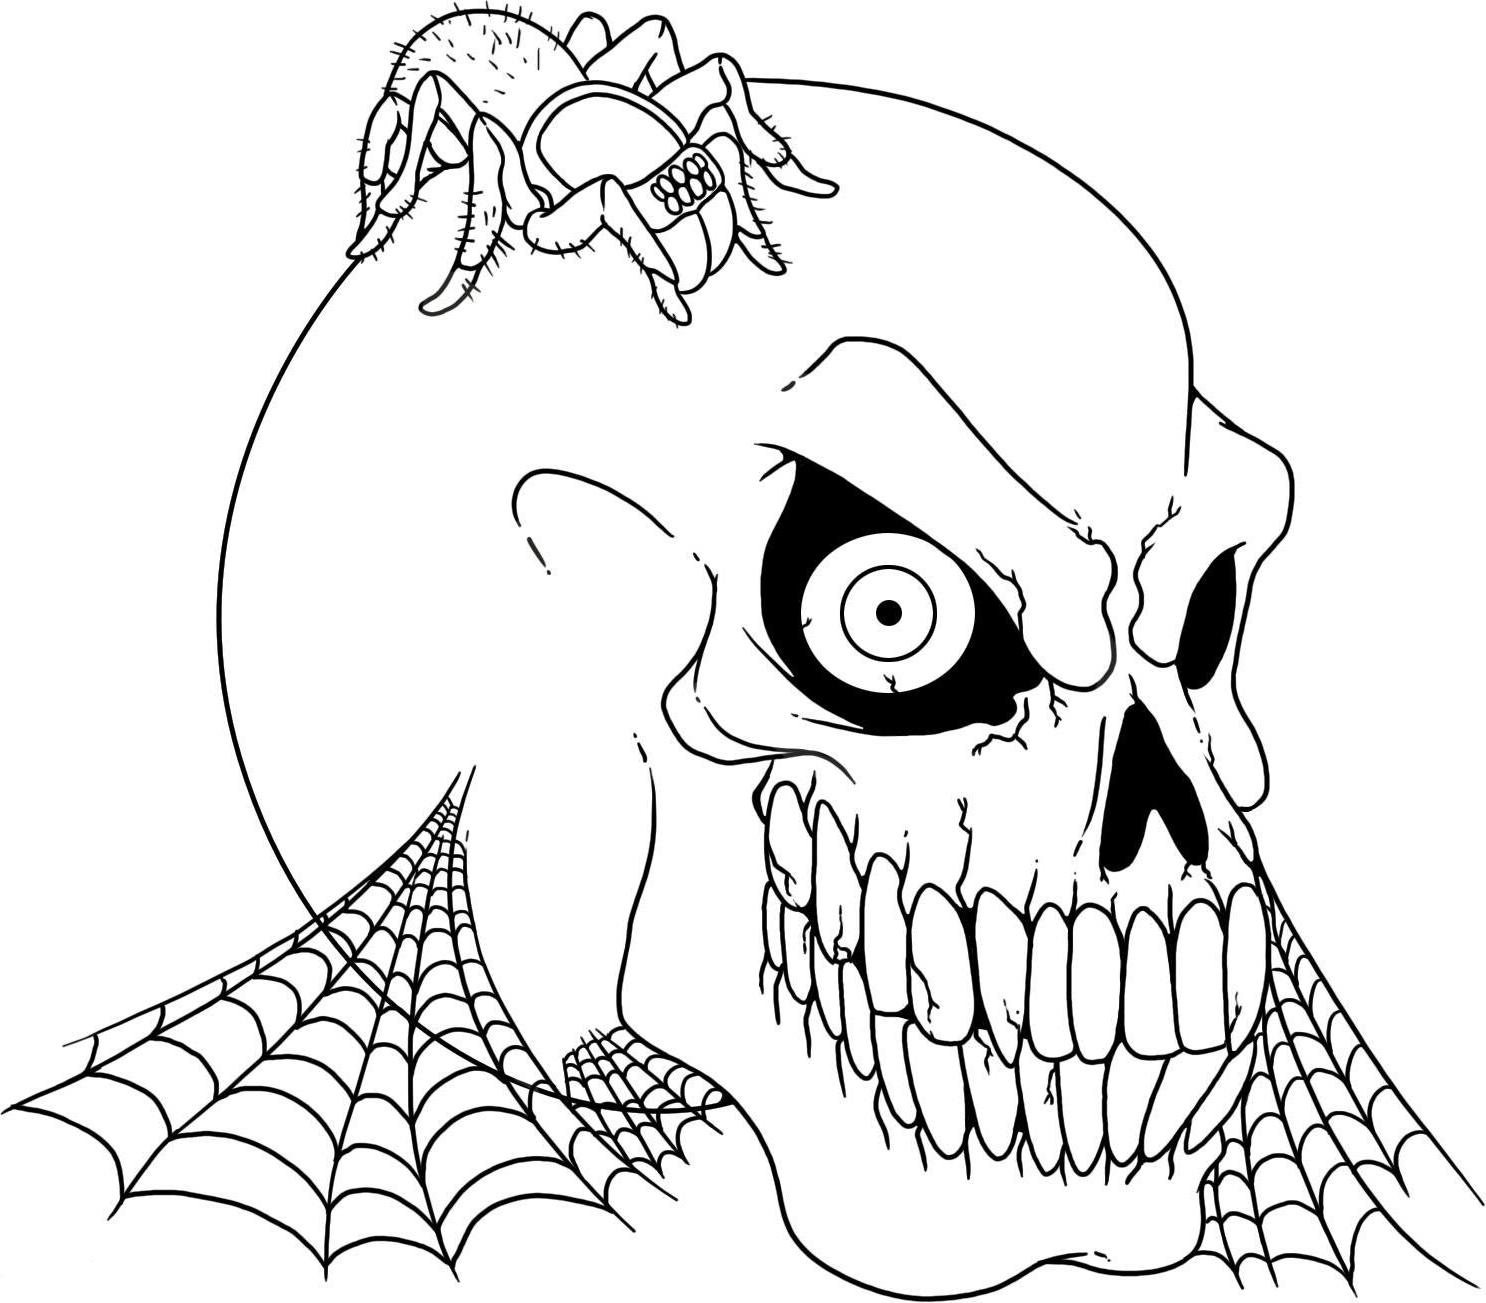 spooky halloween coloring pages printable, scary halloween coloring pages for adults, happy halloween coloring pages, halloween pumpkin coloring pages, halloween coloring pages for toddlers, free printable scary halloween coloring pages, cute halloween coloring pages, creepy coloring pages adults